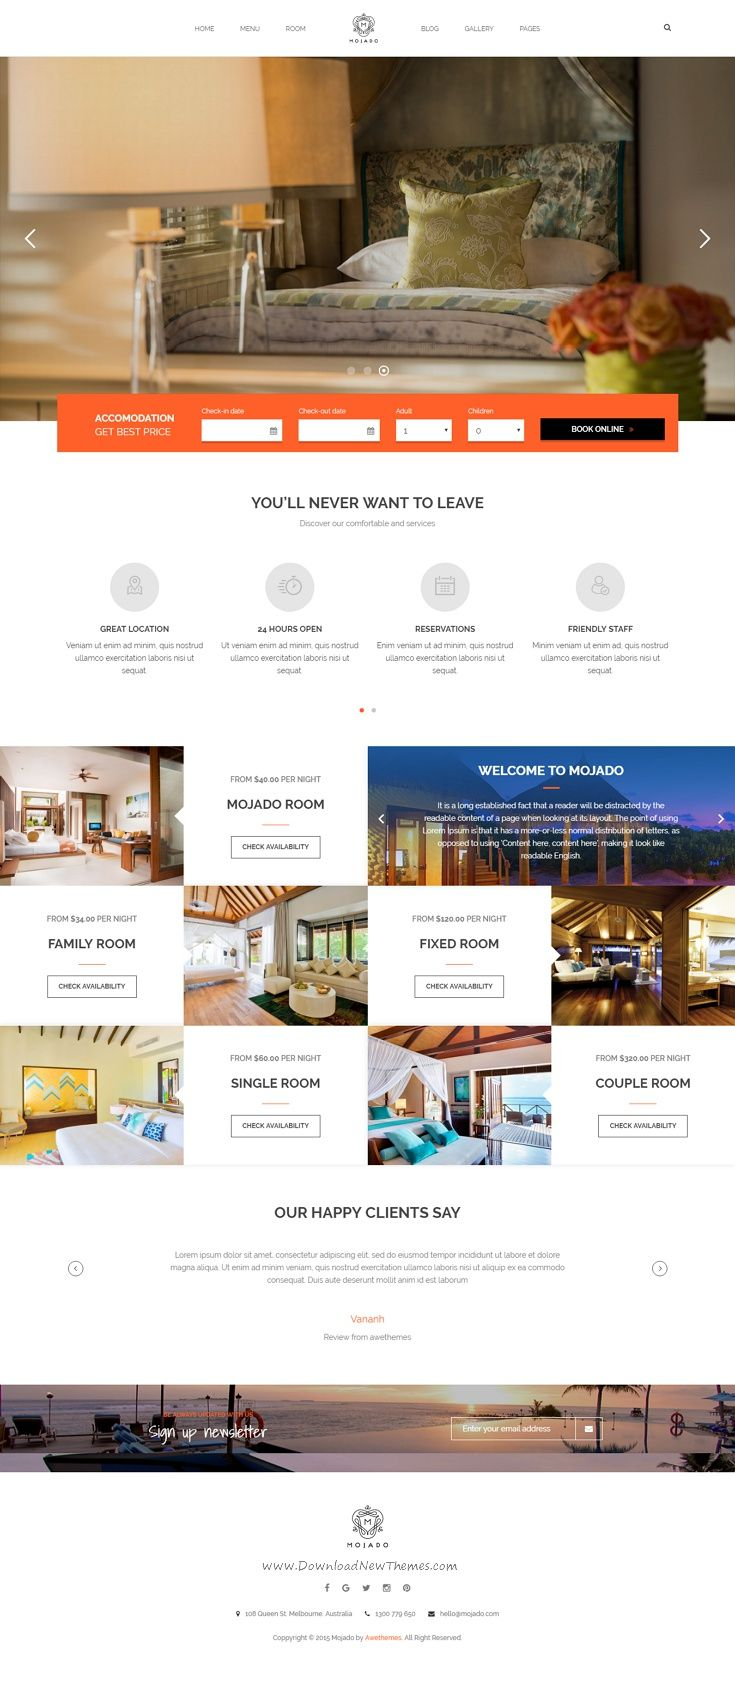 Mojado is a powerful and feature-rich WordPress theme that brings you everything to run a high performance and well-designed hotel website. The theme comes with its own booking plugin to create a top-notch online booking system